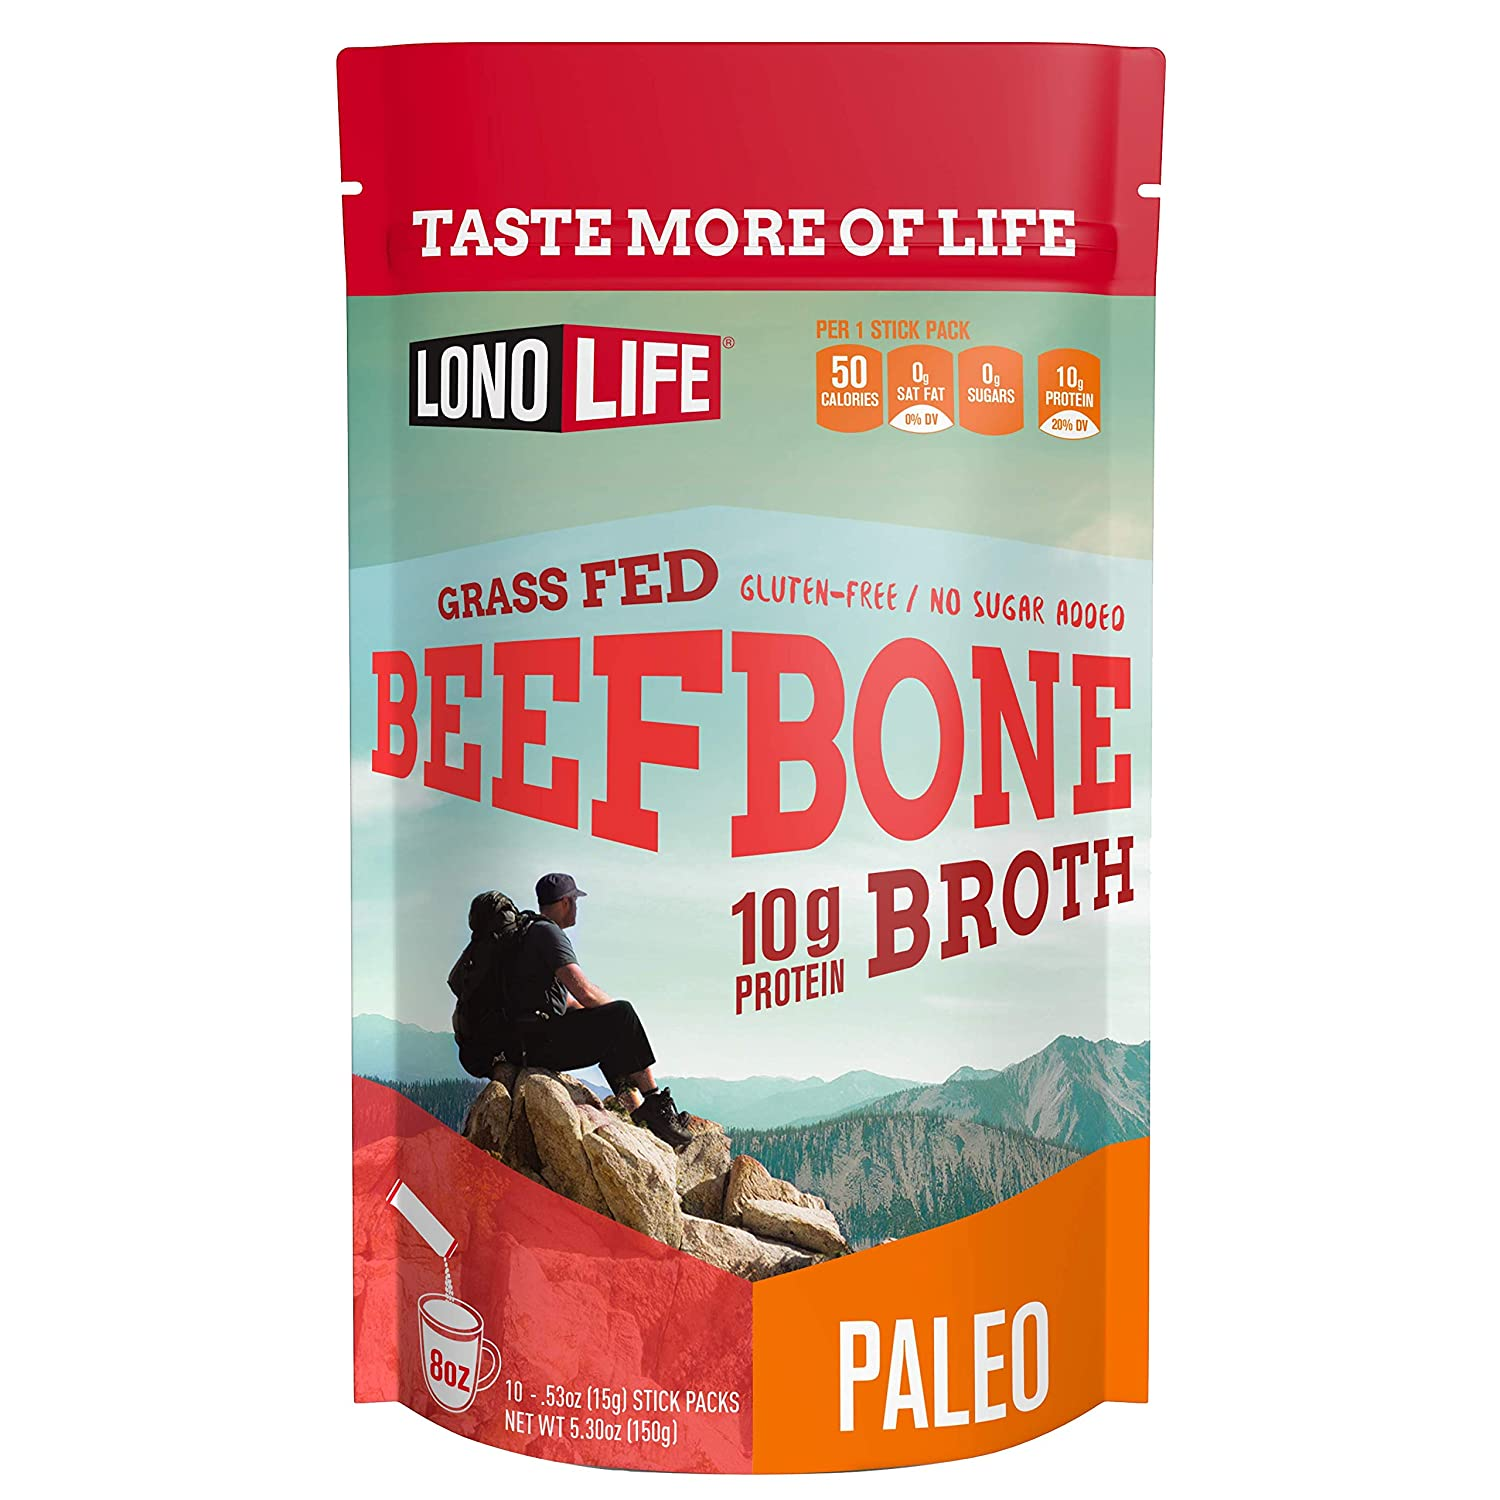 Beef Bone Broth Powder by LonoLife, Grass Fed, 10g Collagen Protein, Keto & Paleo Friendly, Low-Carb, Gluten Free, Portable Stick Packs (.53oz ea) - 10 Count